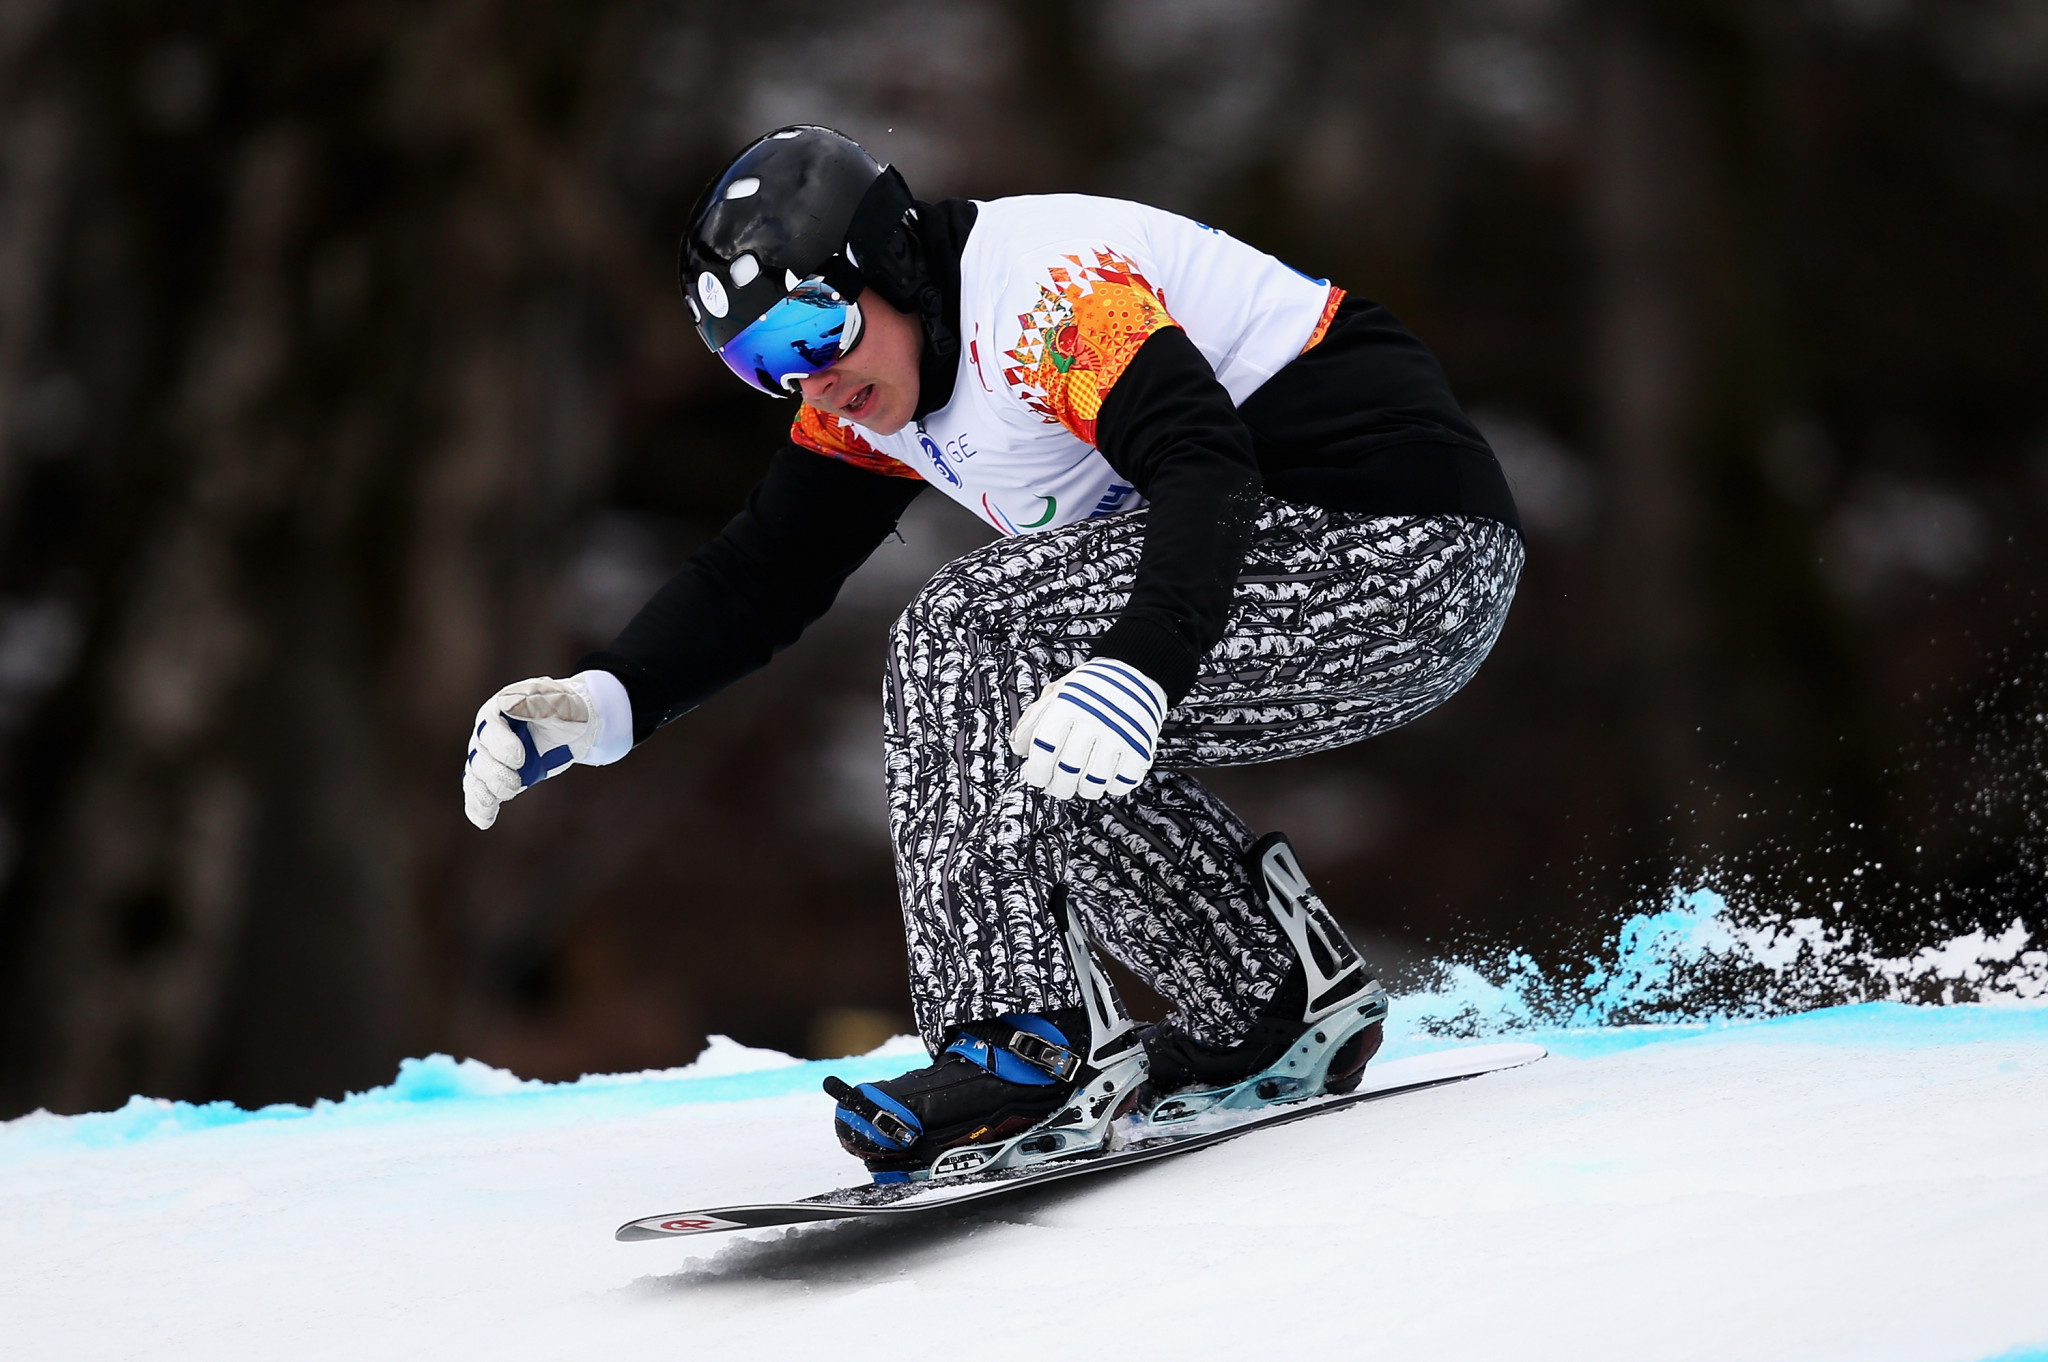 Home favourite among winners at World Para Snowboard World Cup in Pyha